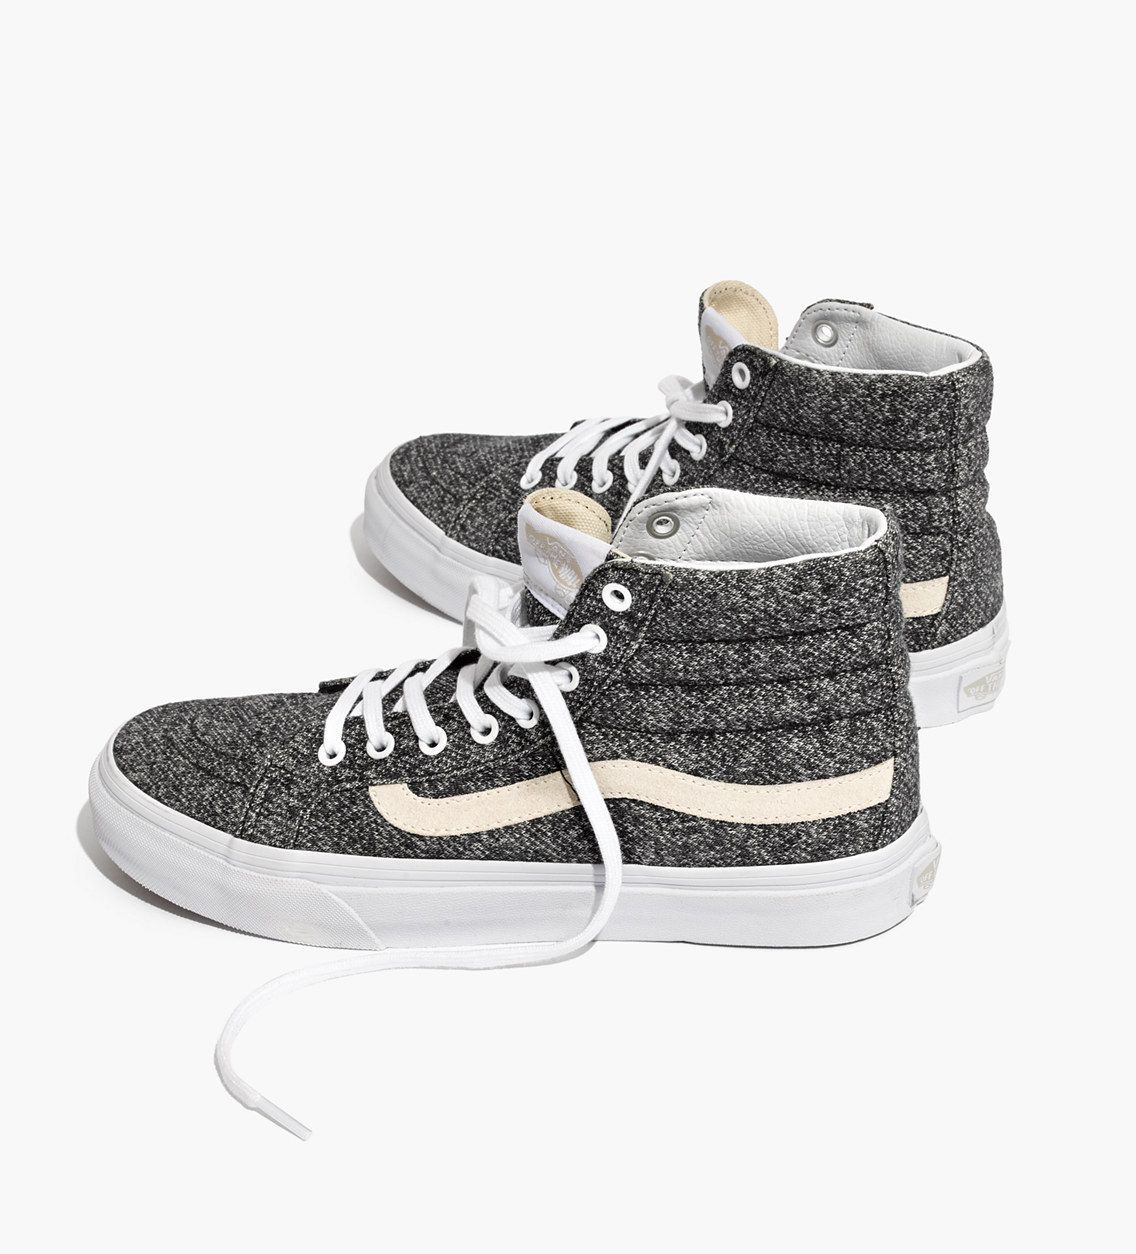 df6e44b95a1016 Madewell Womens Vans Unisex Sk8-Hi High-Top Sneakers In Marled Fabric